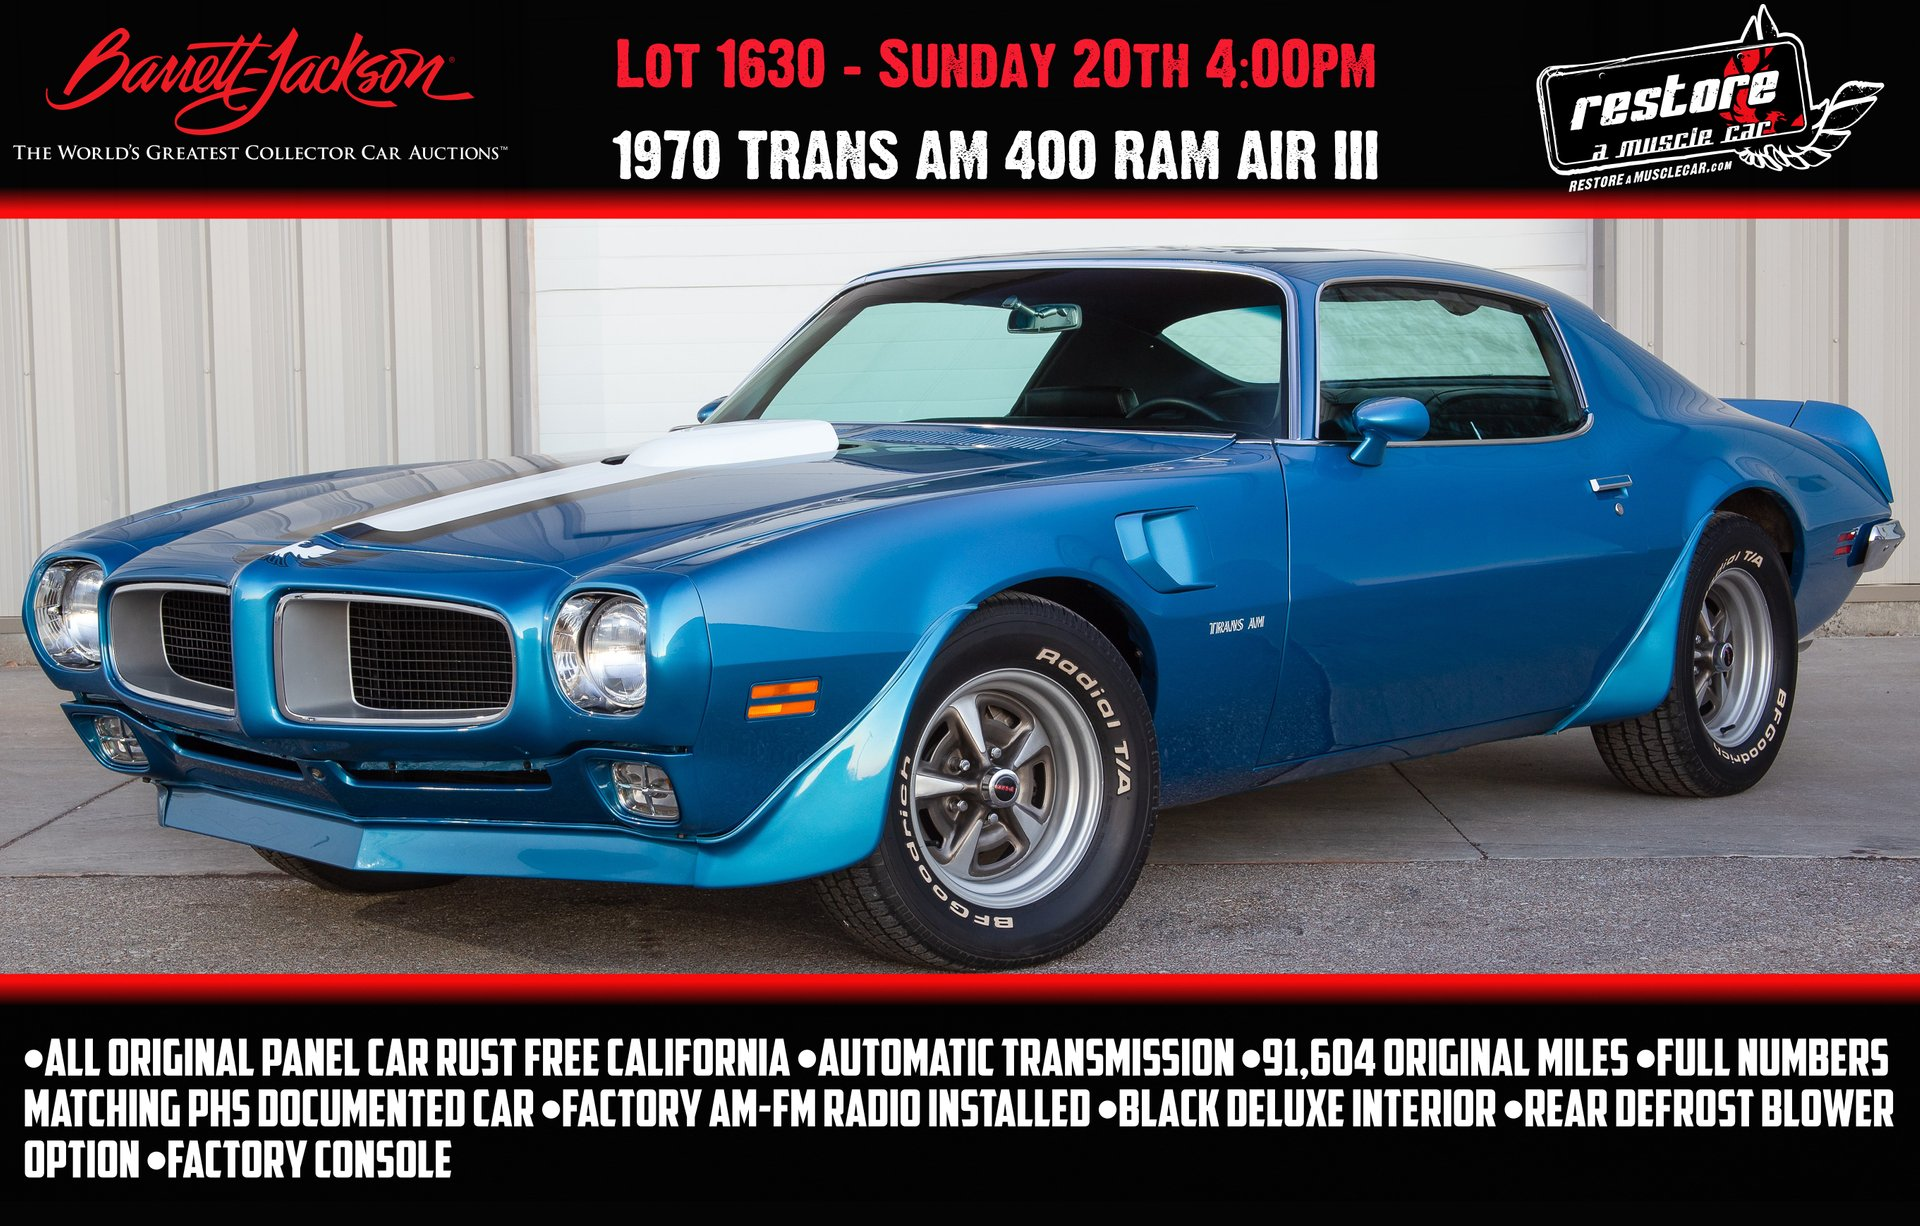 1970 pontiac trans am ram air iii